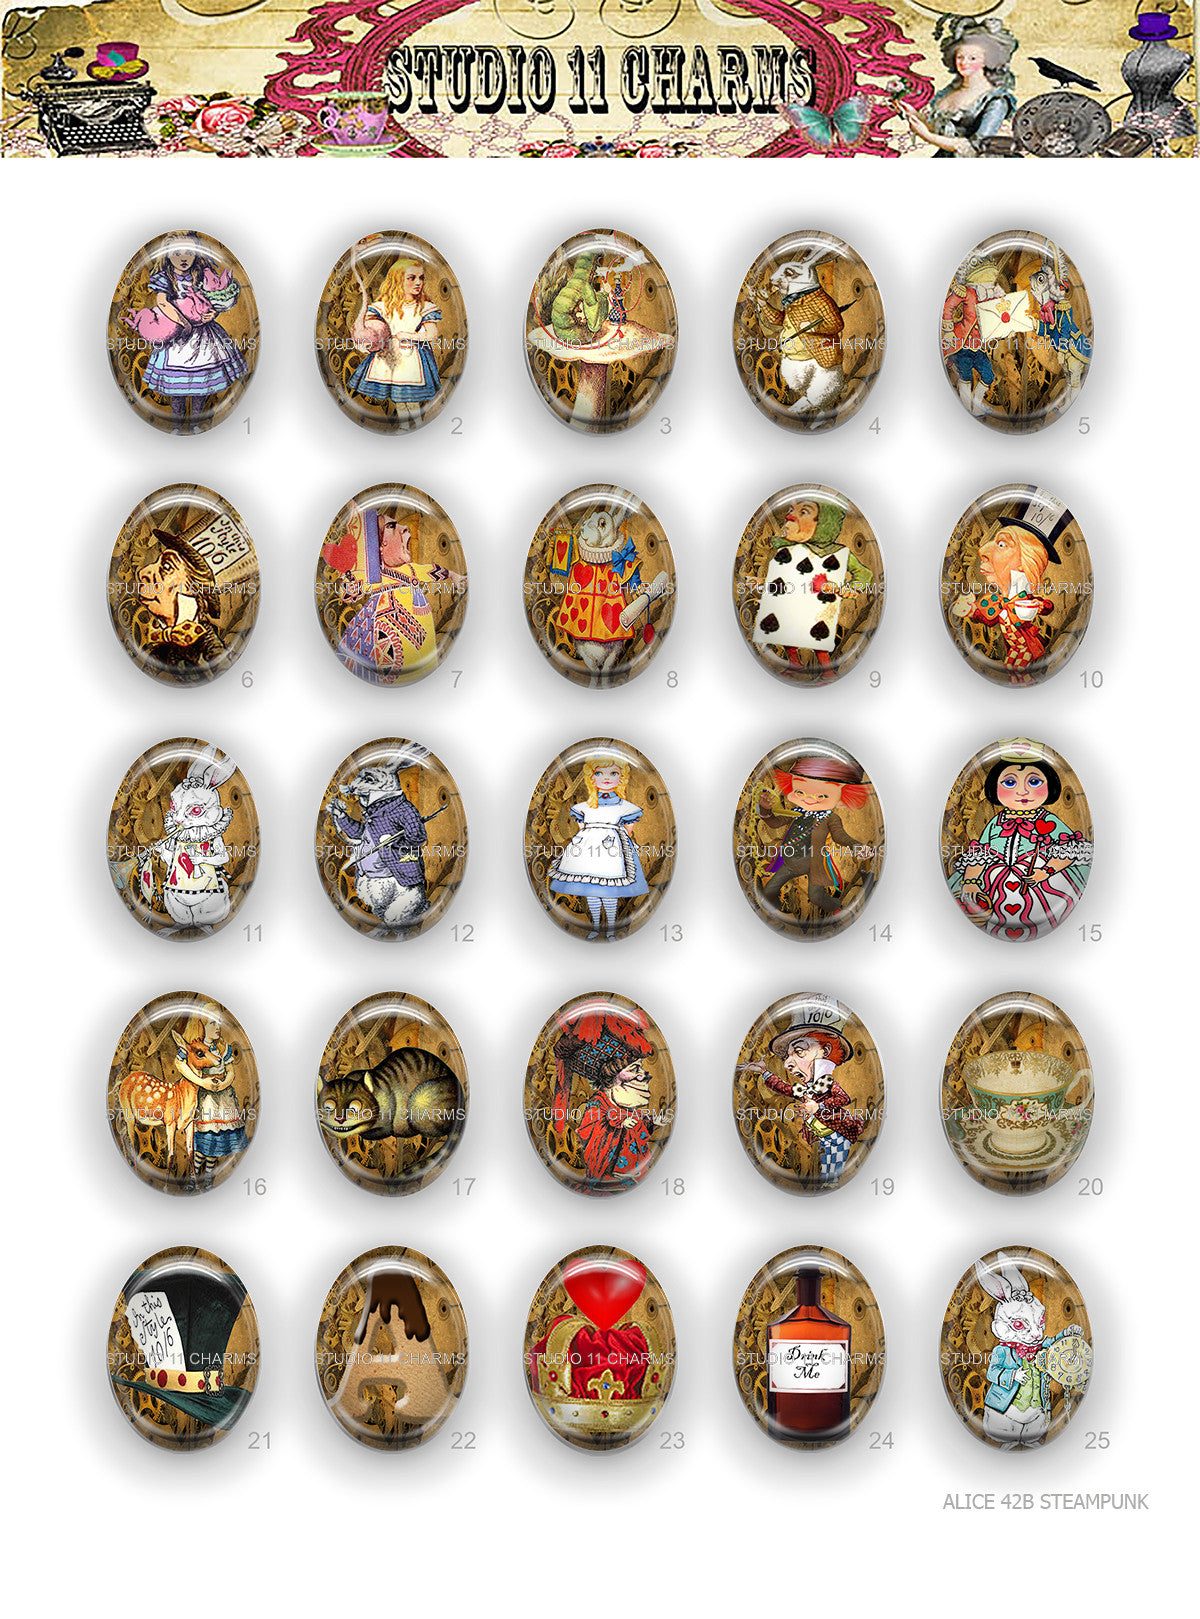 40x30, 18x25, 13X18 Resin Cameo LOW DOME Cabochon. Alice in Wonderland 42b Steampunk